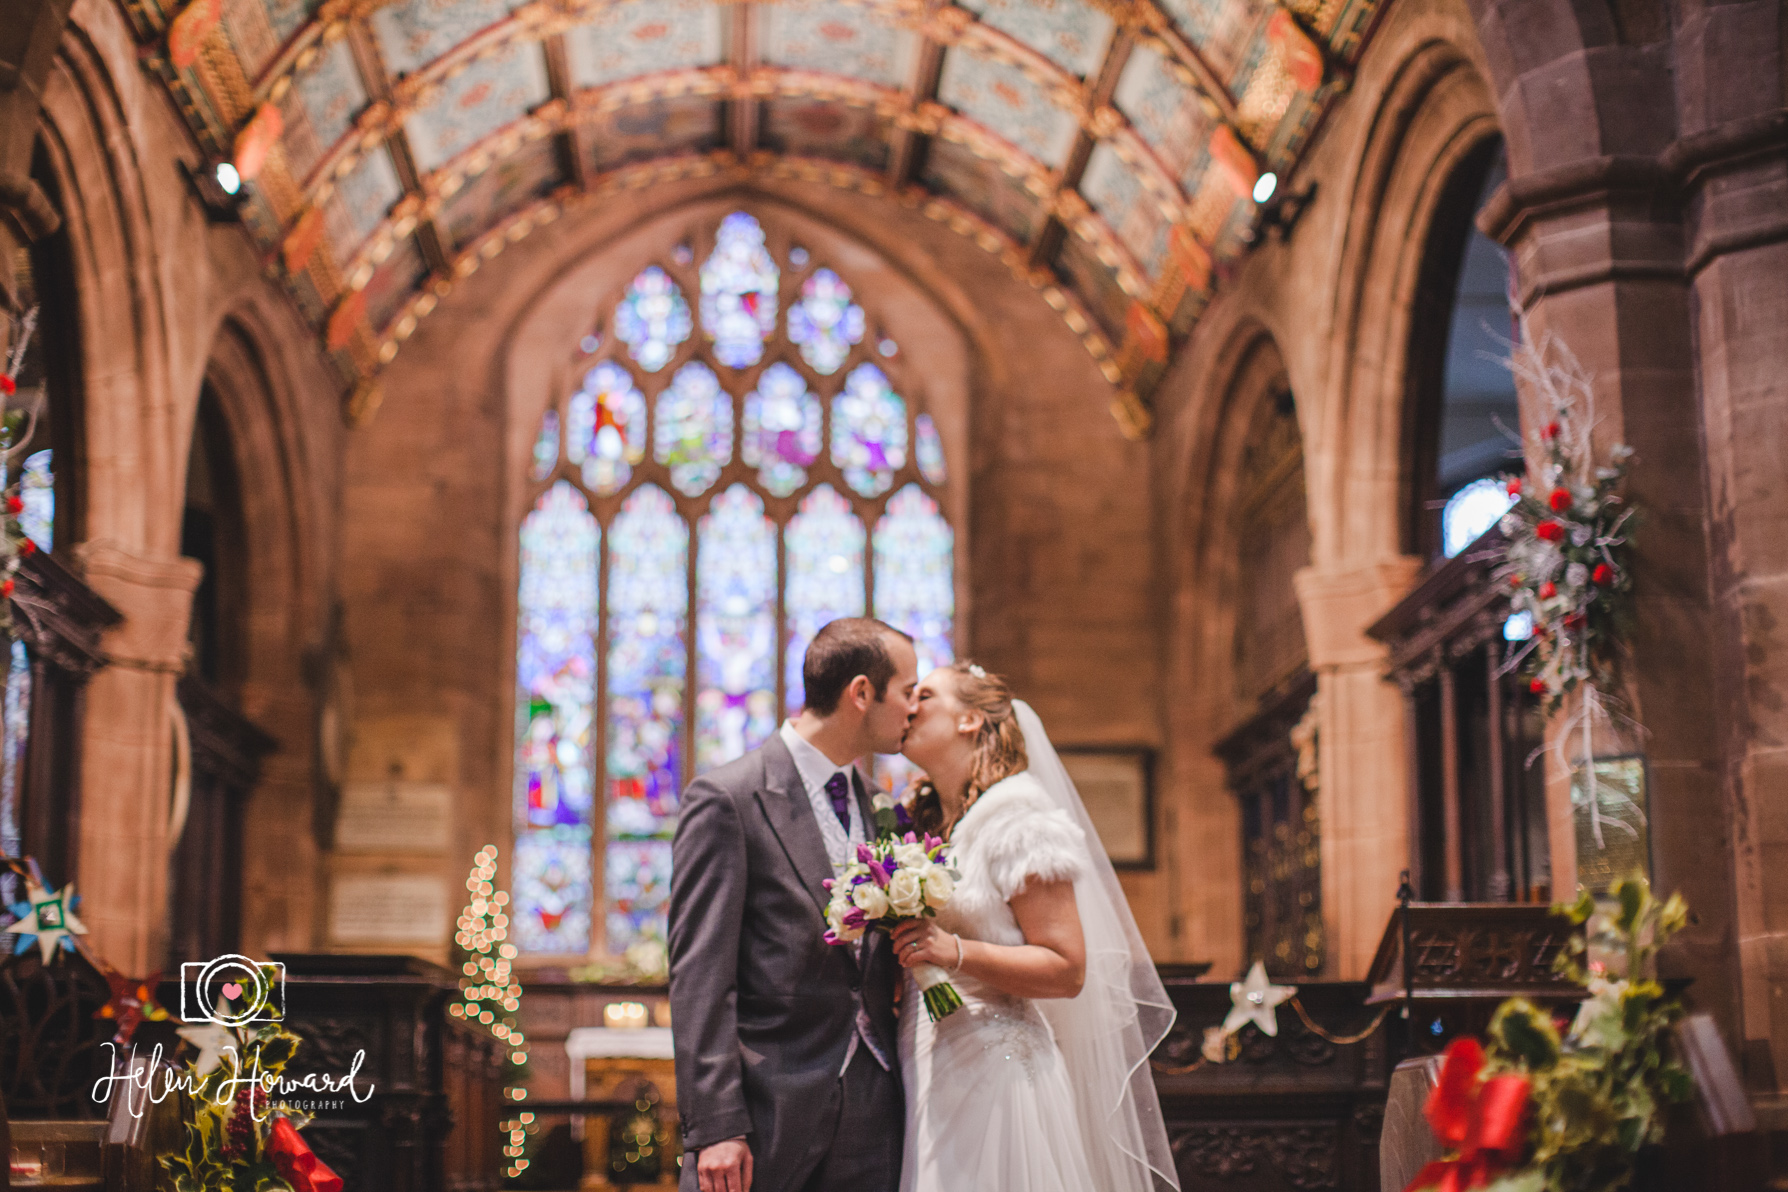 A bride and Groom kissing in the church wedding photography in Sutton Coldfield